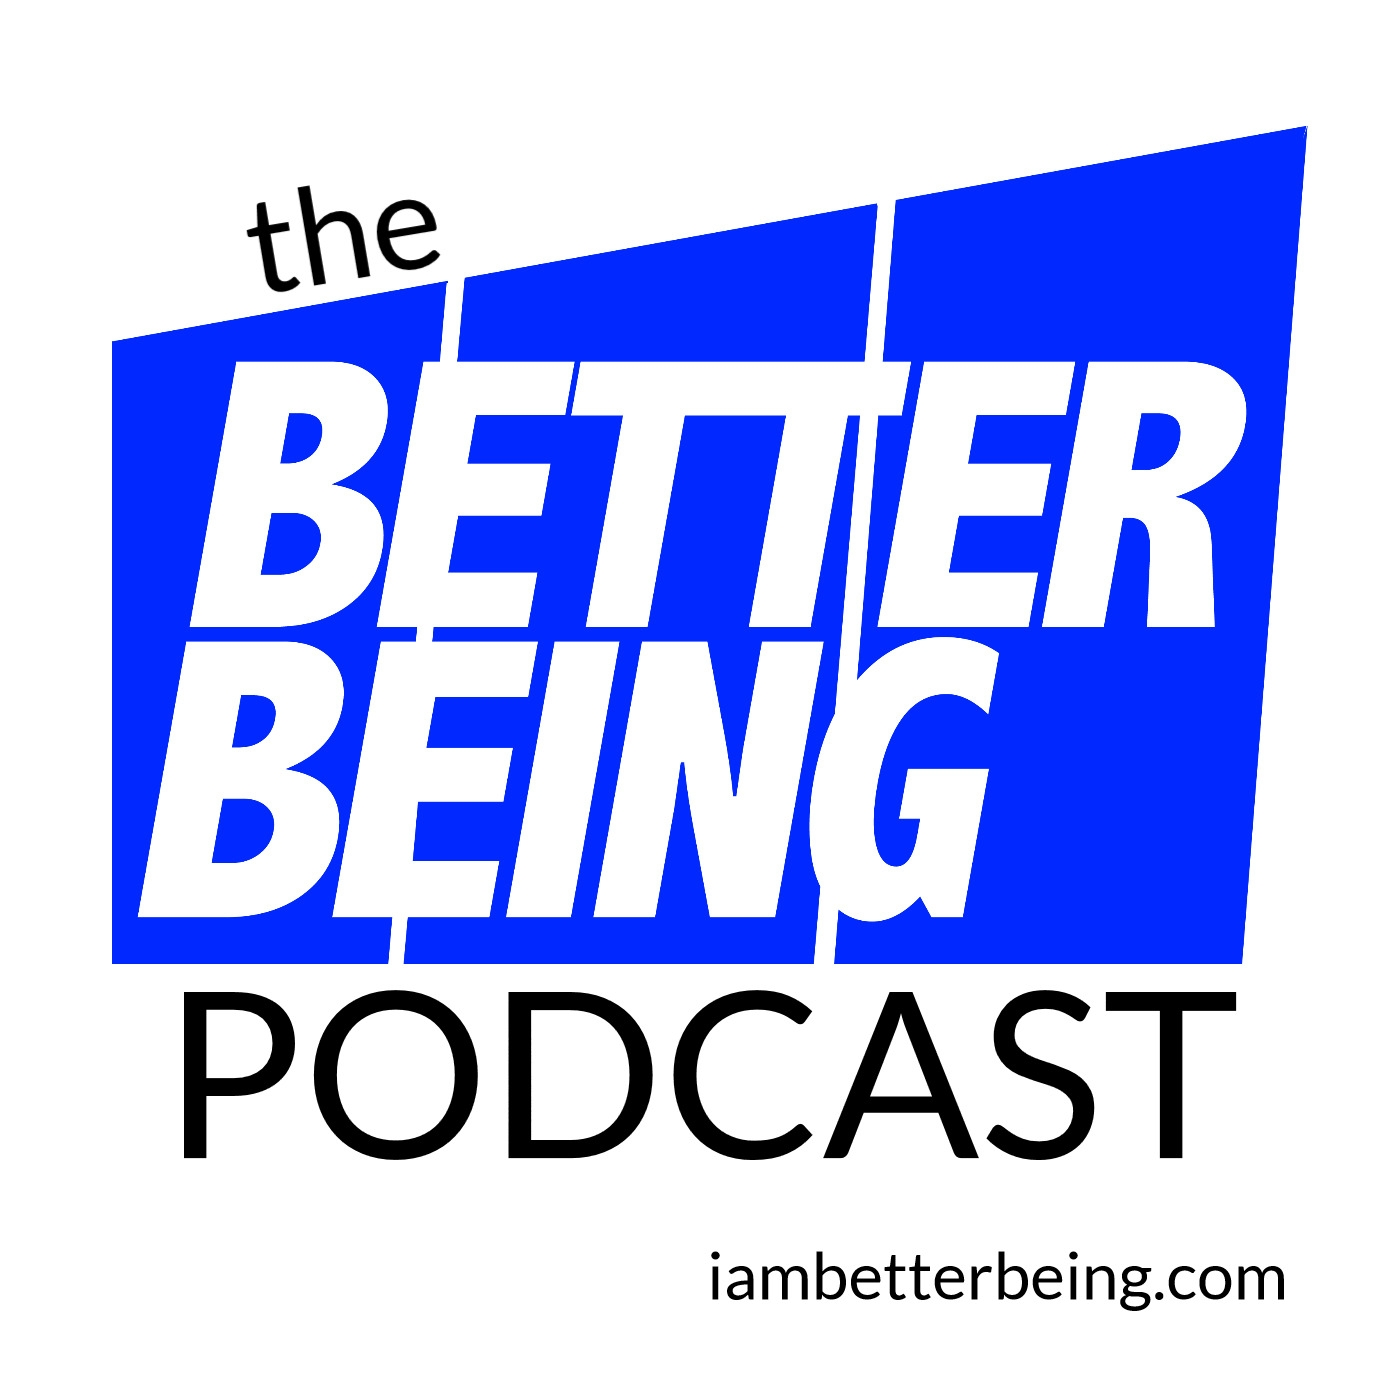 Podcast - Better Being